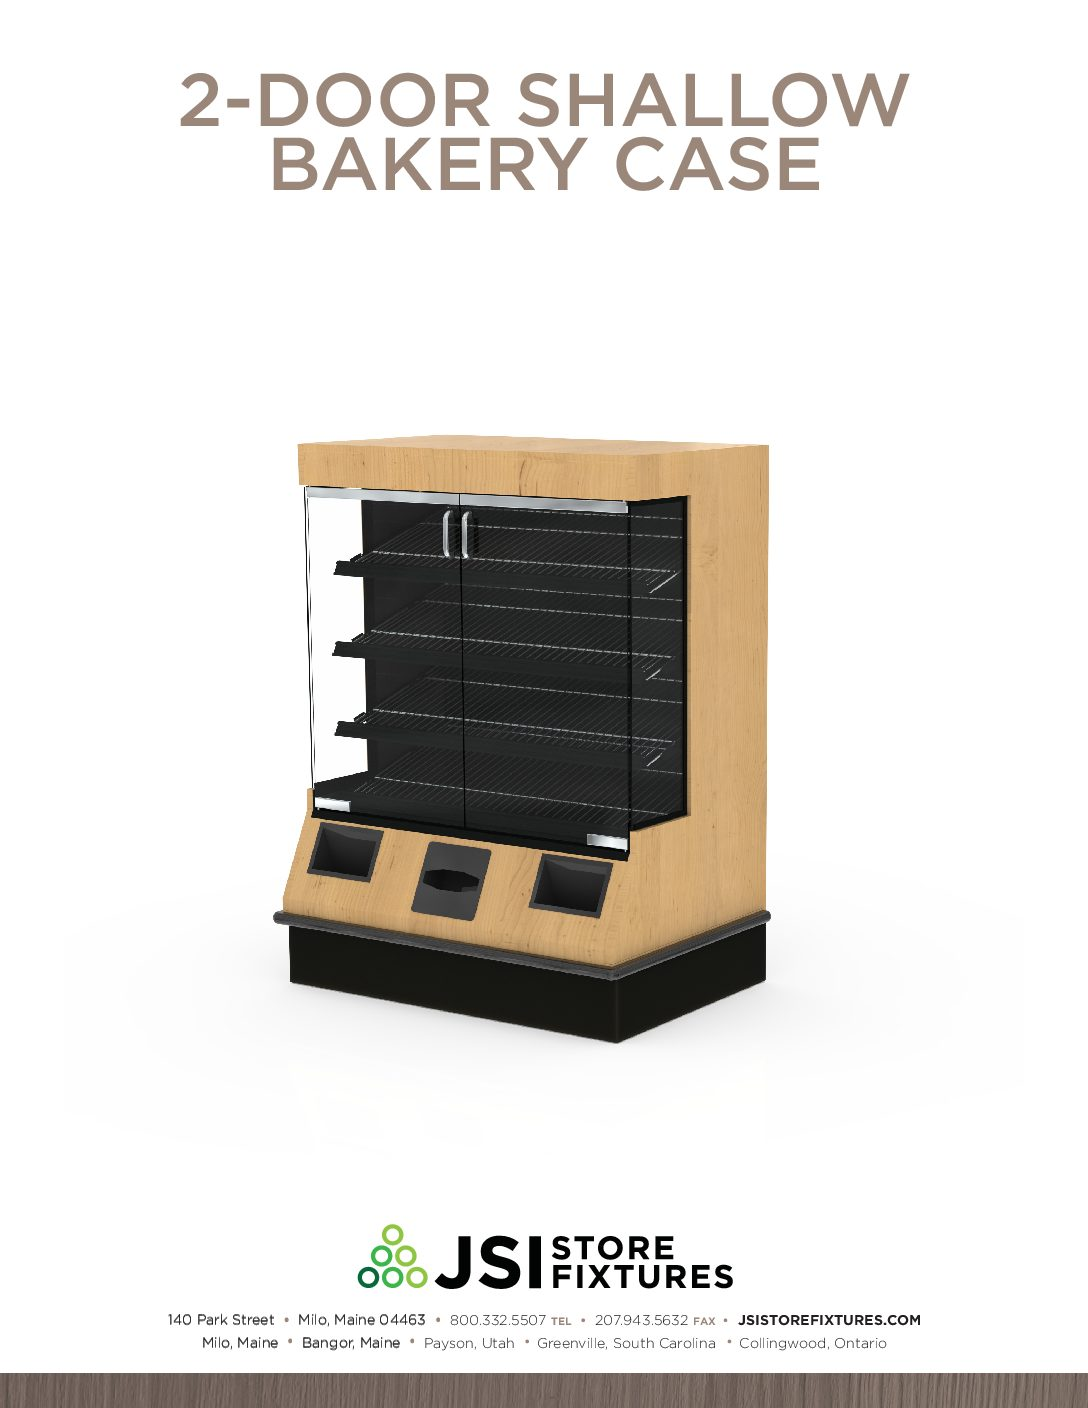 2-Door Shallow Bakery Case Spec Sheet